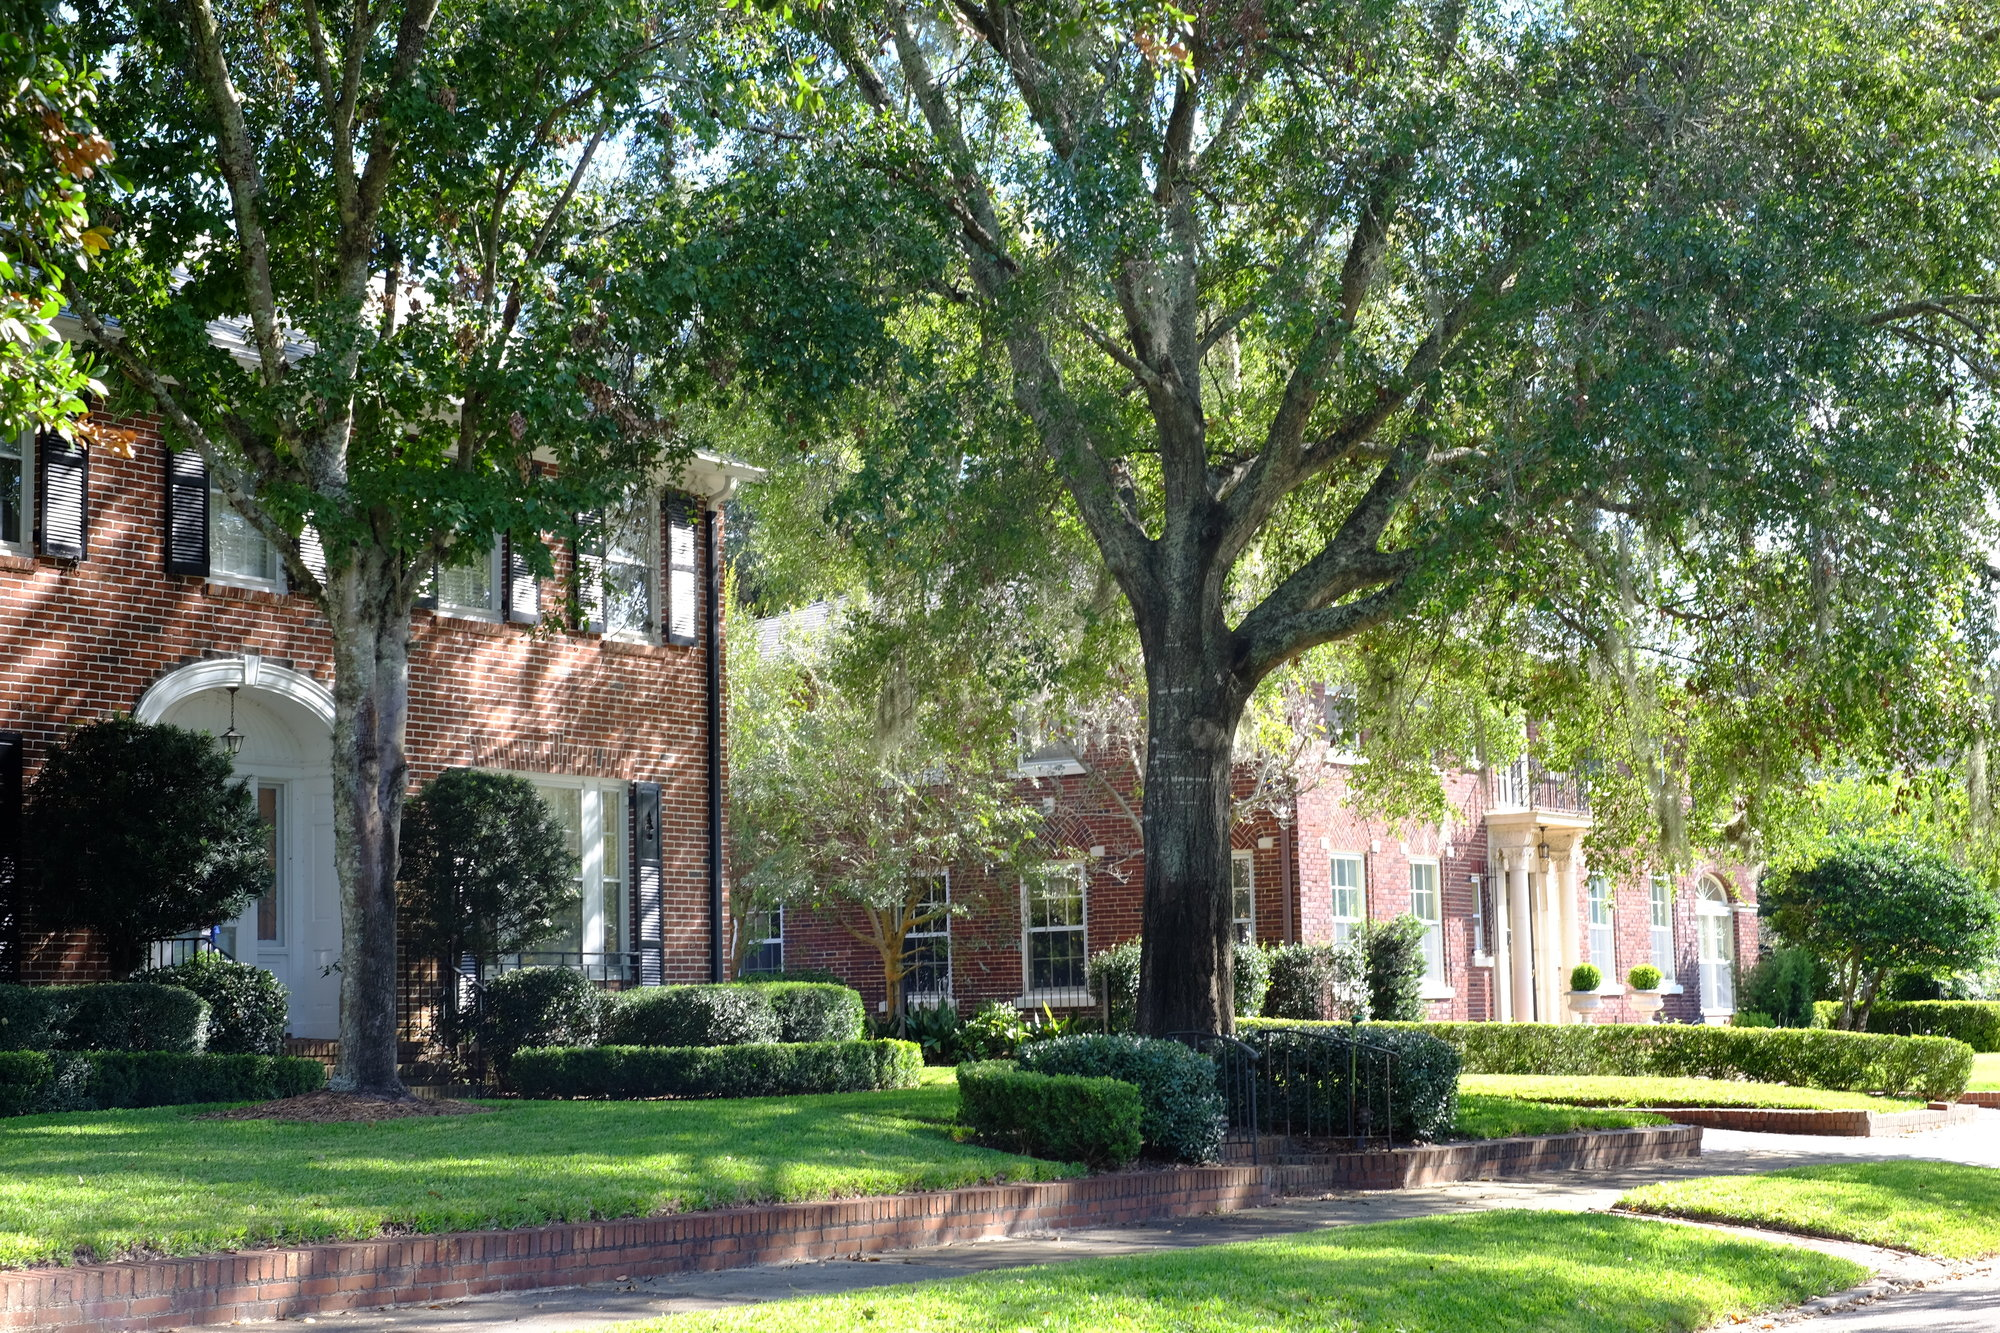 Historic homes and tree lined sidewalks in Avondale Jacksonville